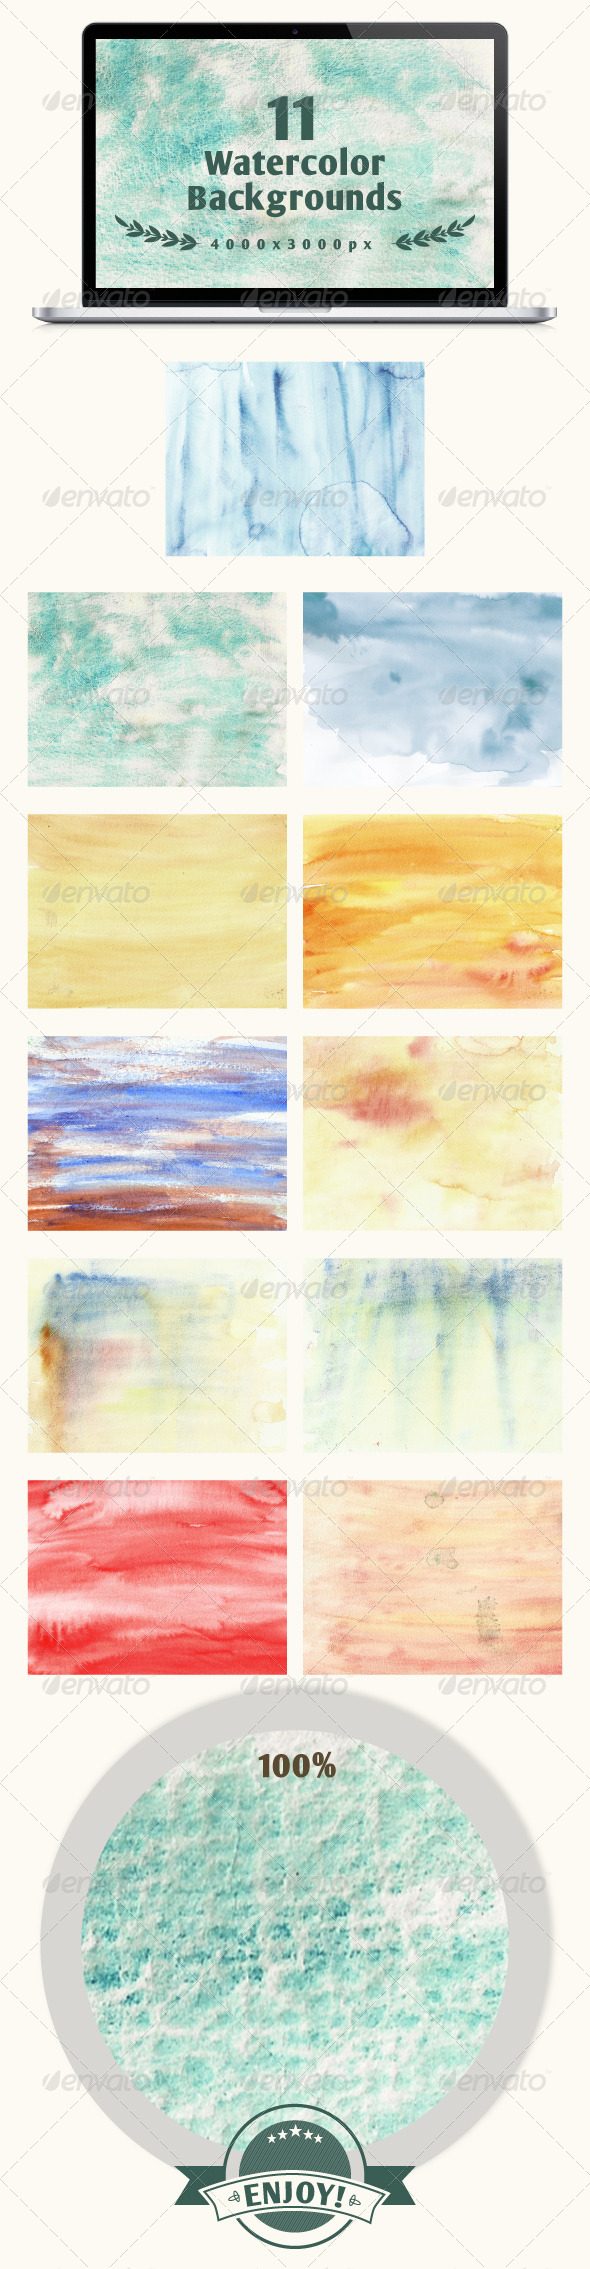 GraphicRiver Set of 11 watercolor backgrounds 6317281